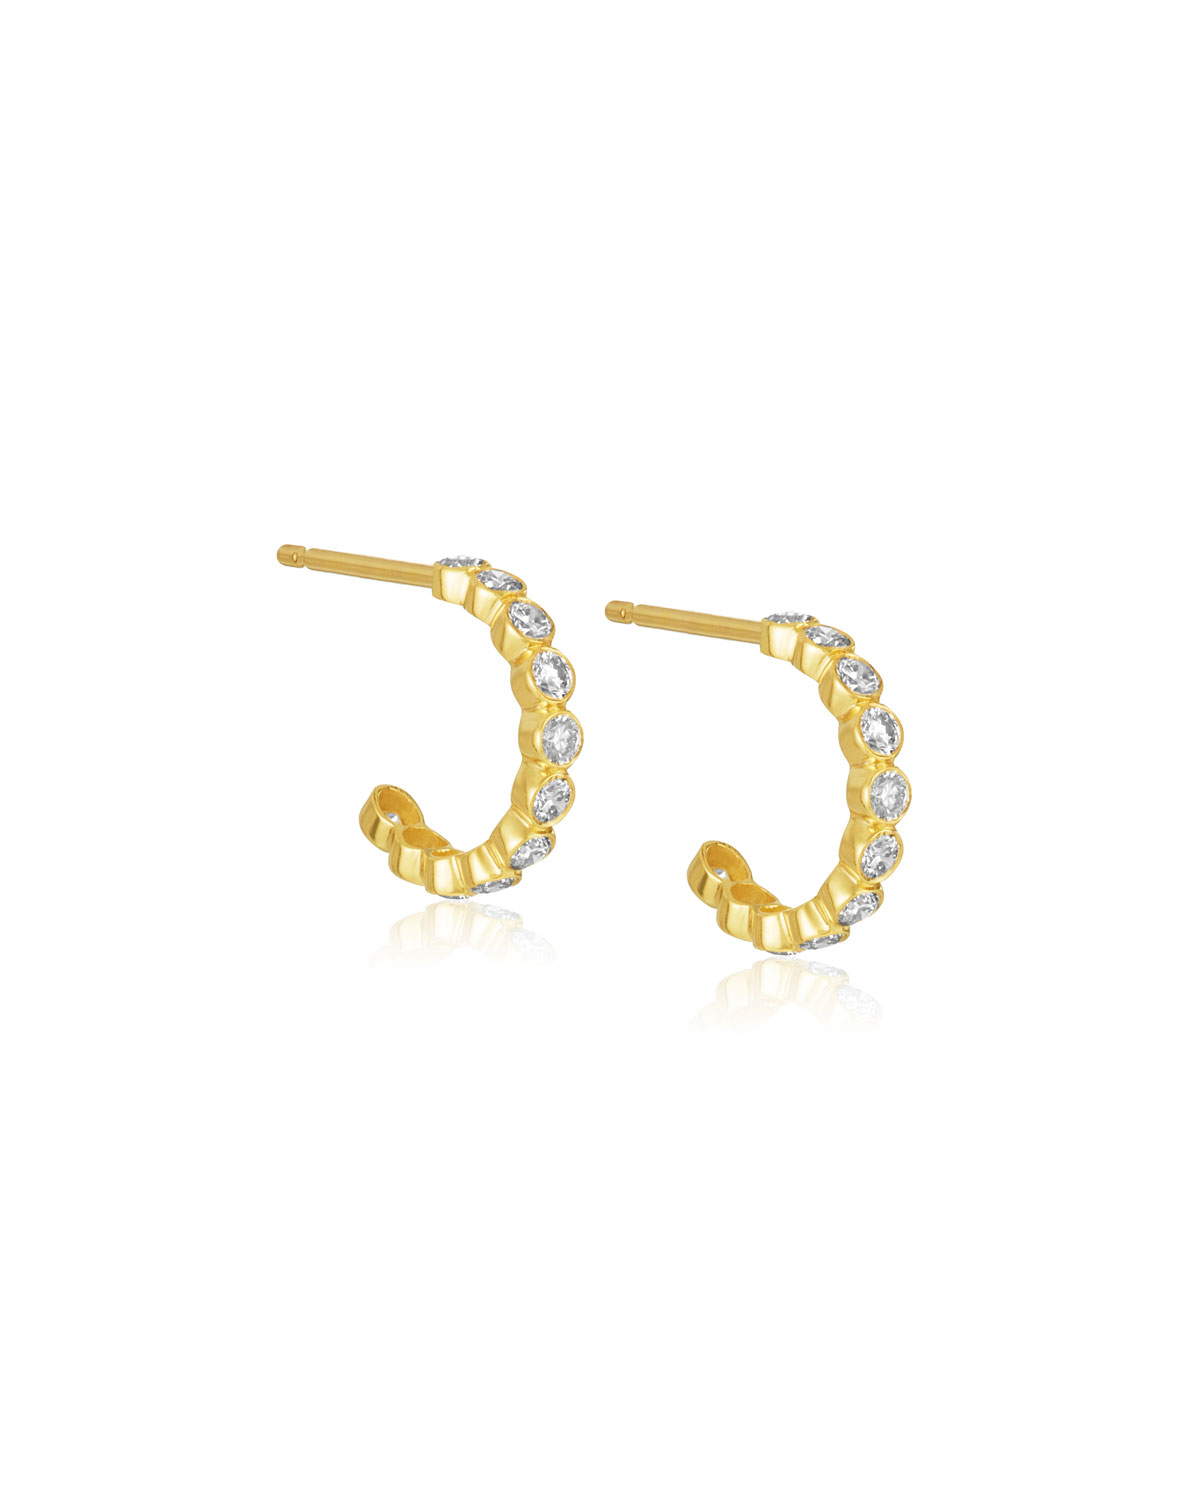 LEGEND AMRAPALI Tarakini Mini Diamond Hoop Earrings